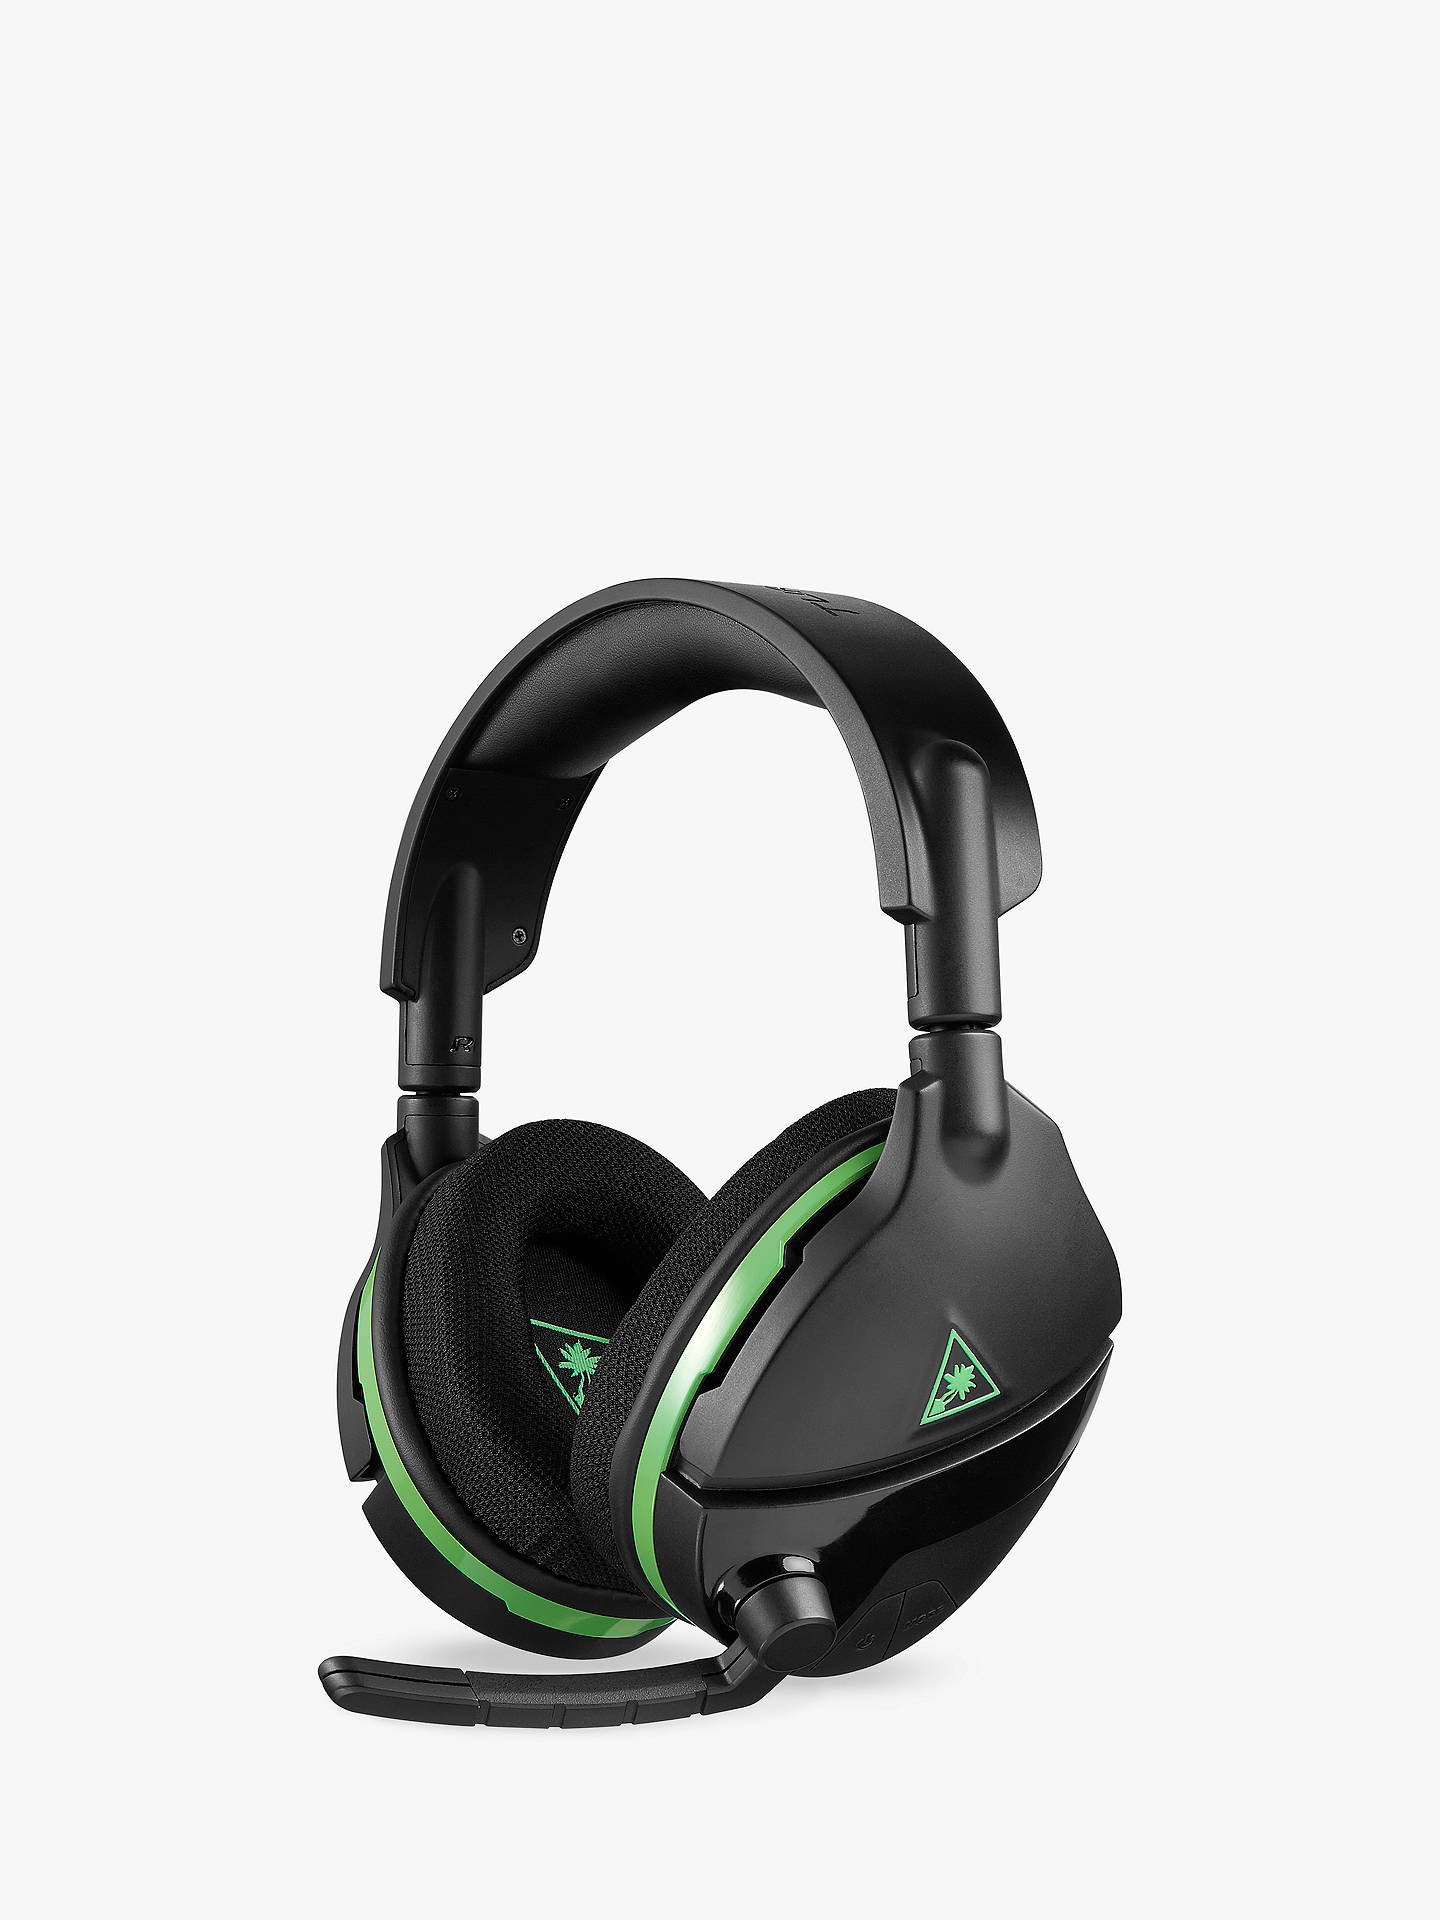 Turtle Beach Stealth 600 Wireless Gaming Headset for Xbox One Consoles,  Black